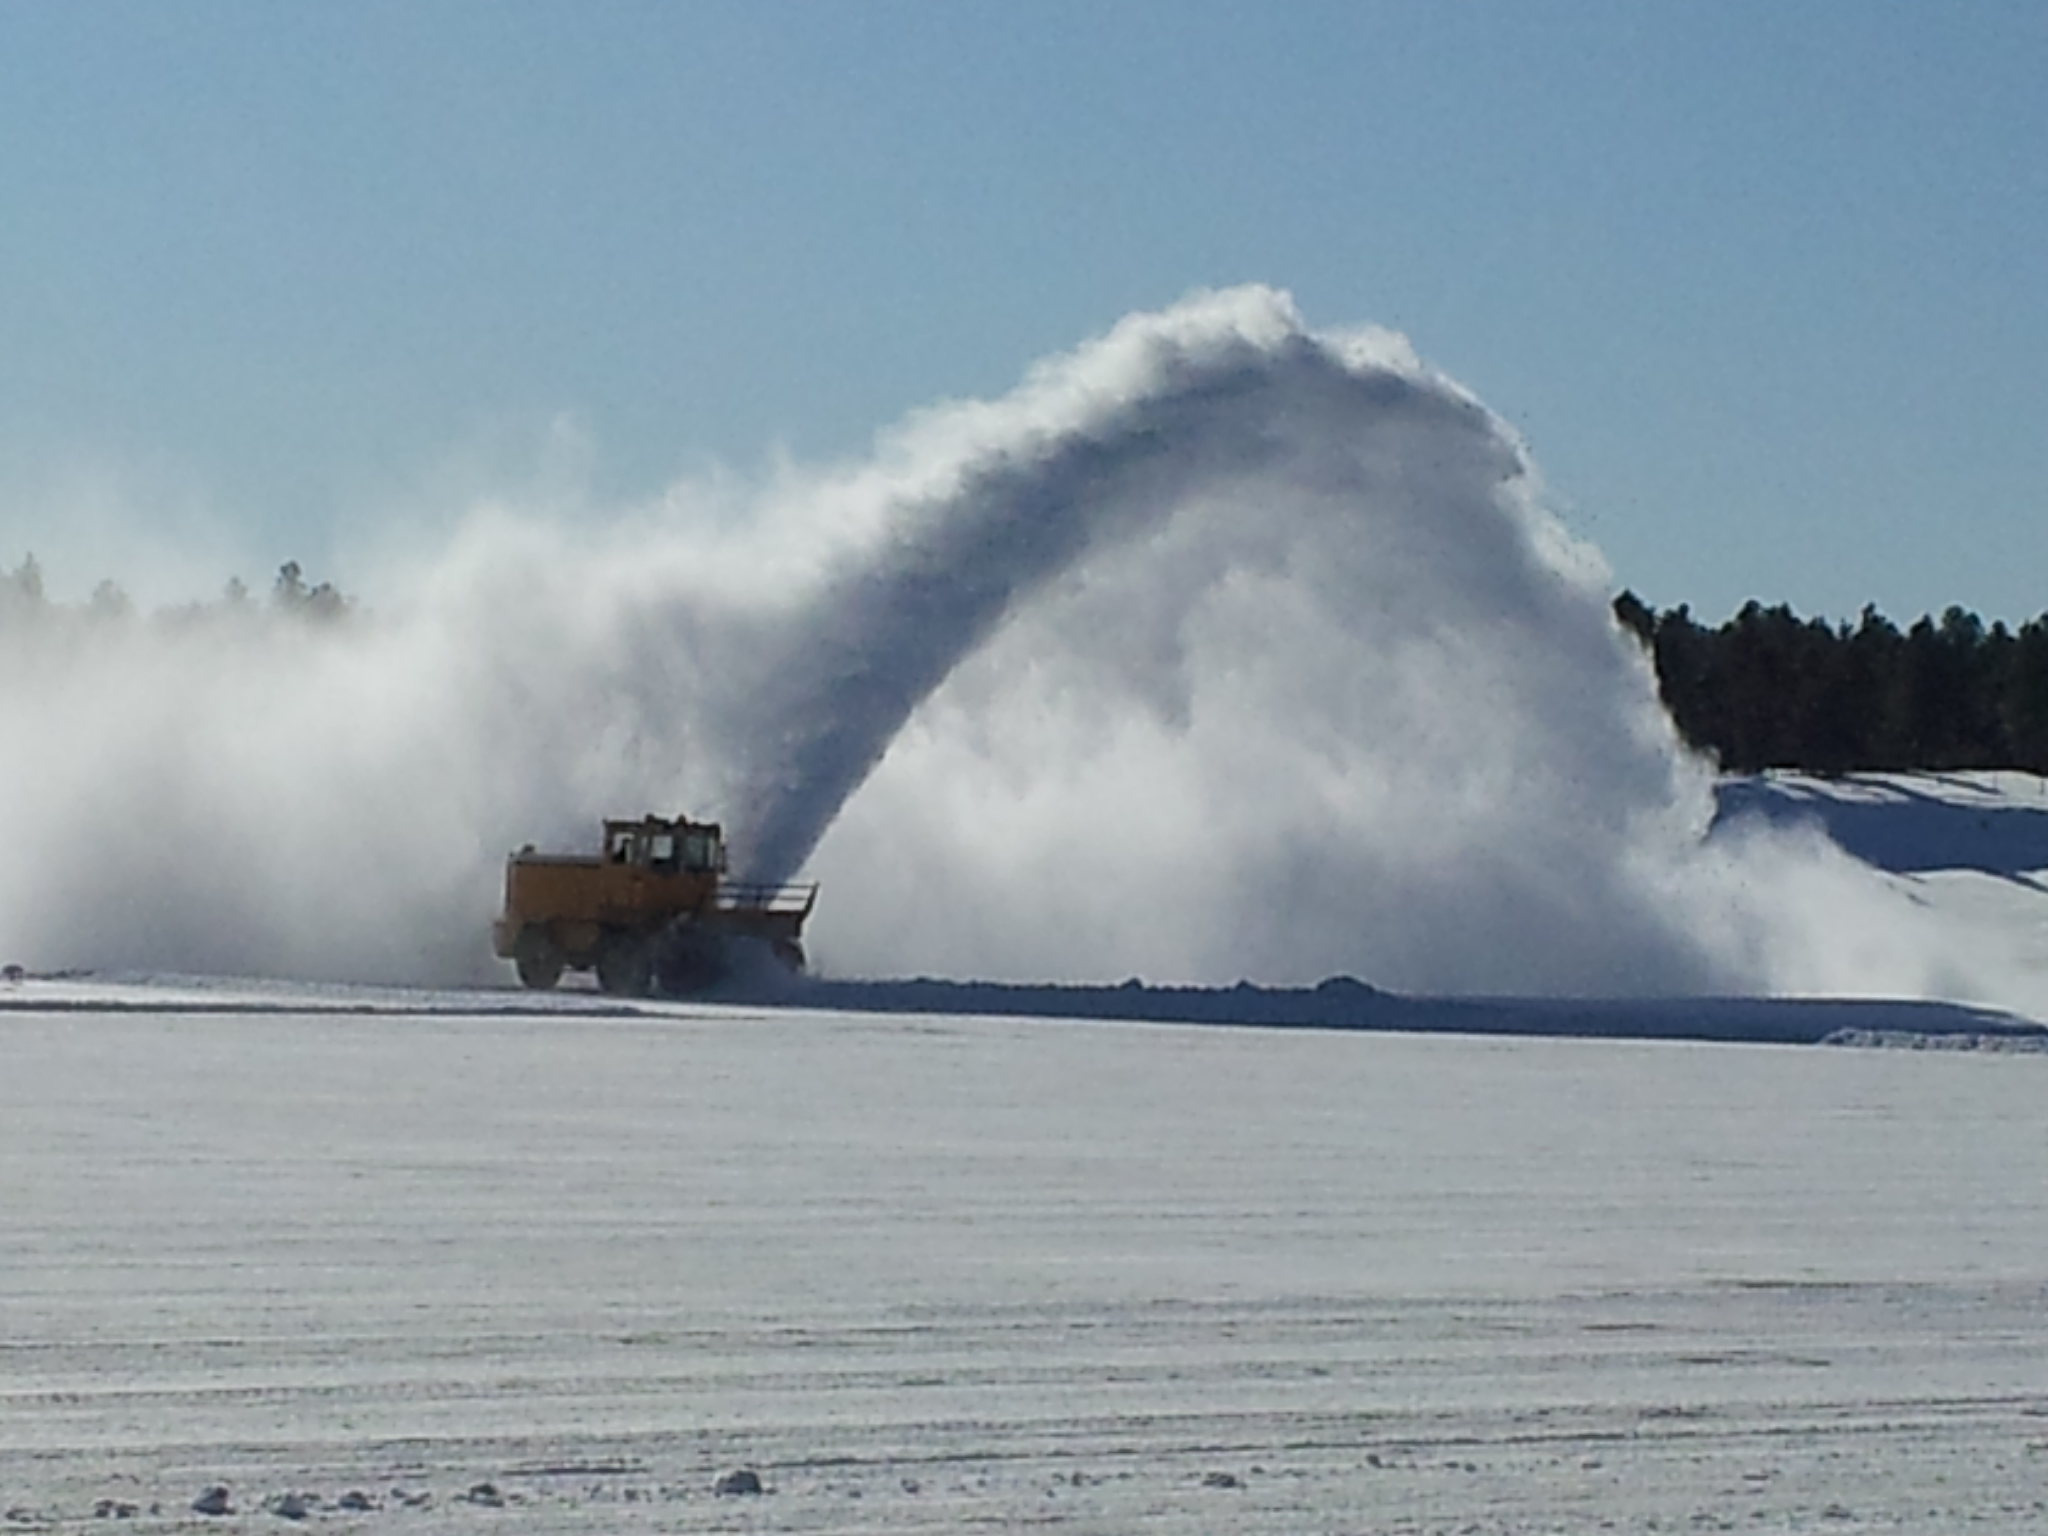 Clearing the Runway on Feb. 20, 2012